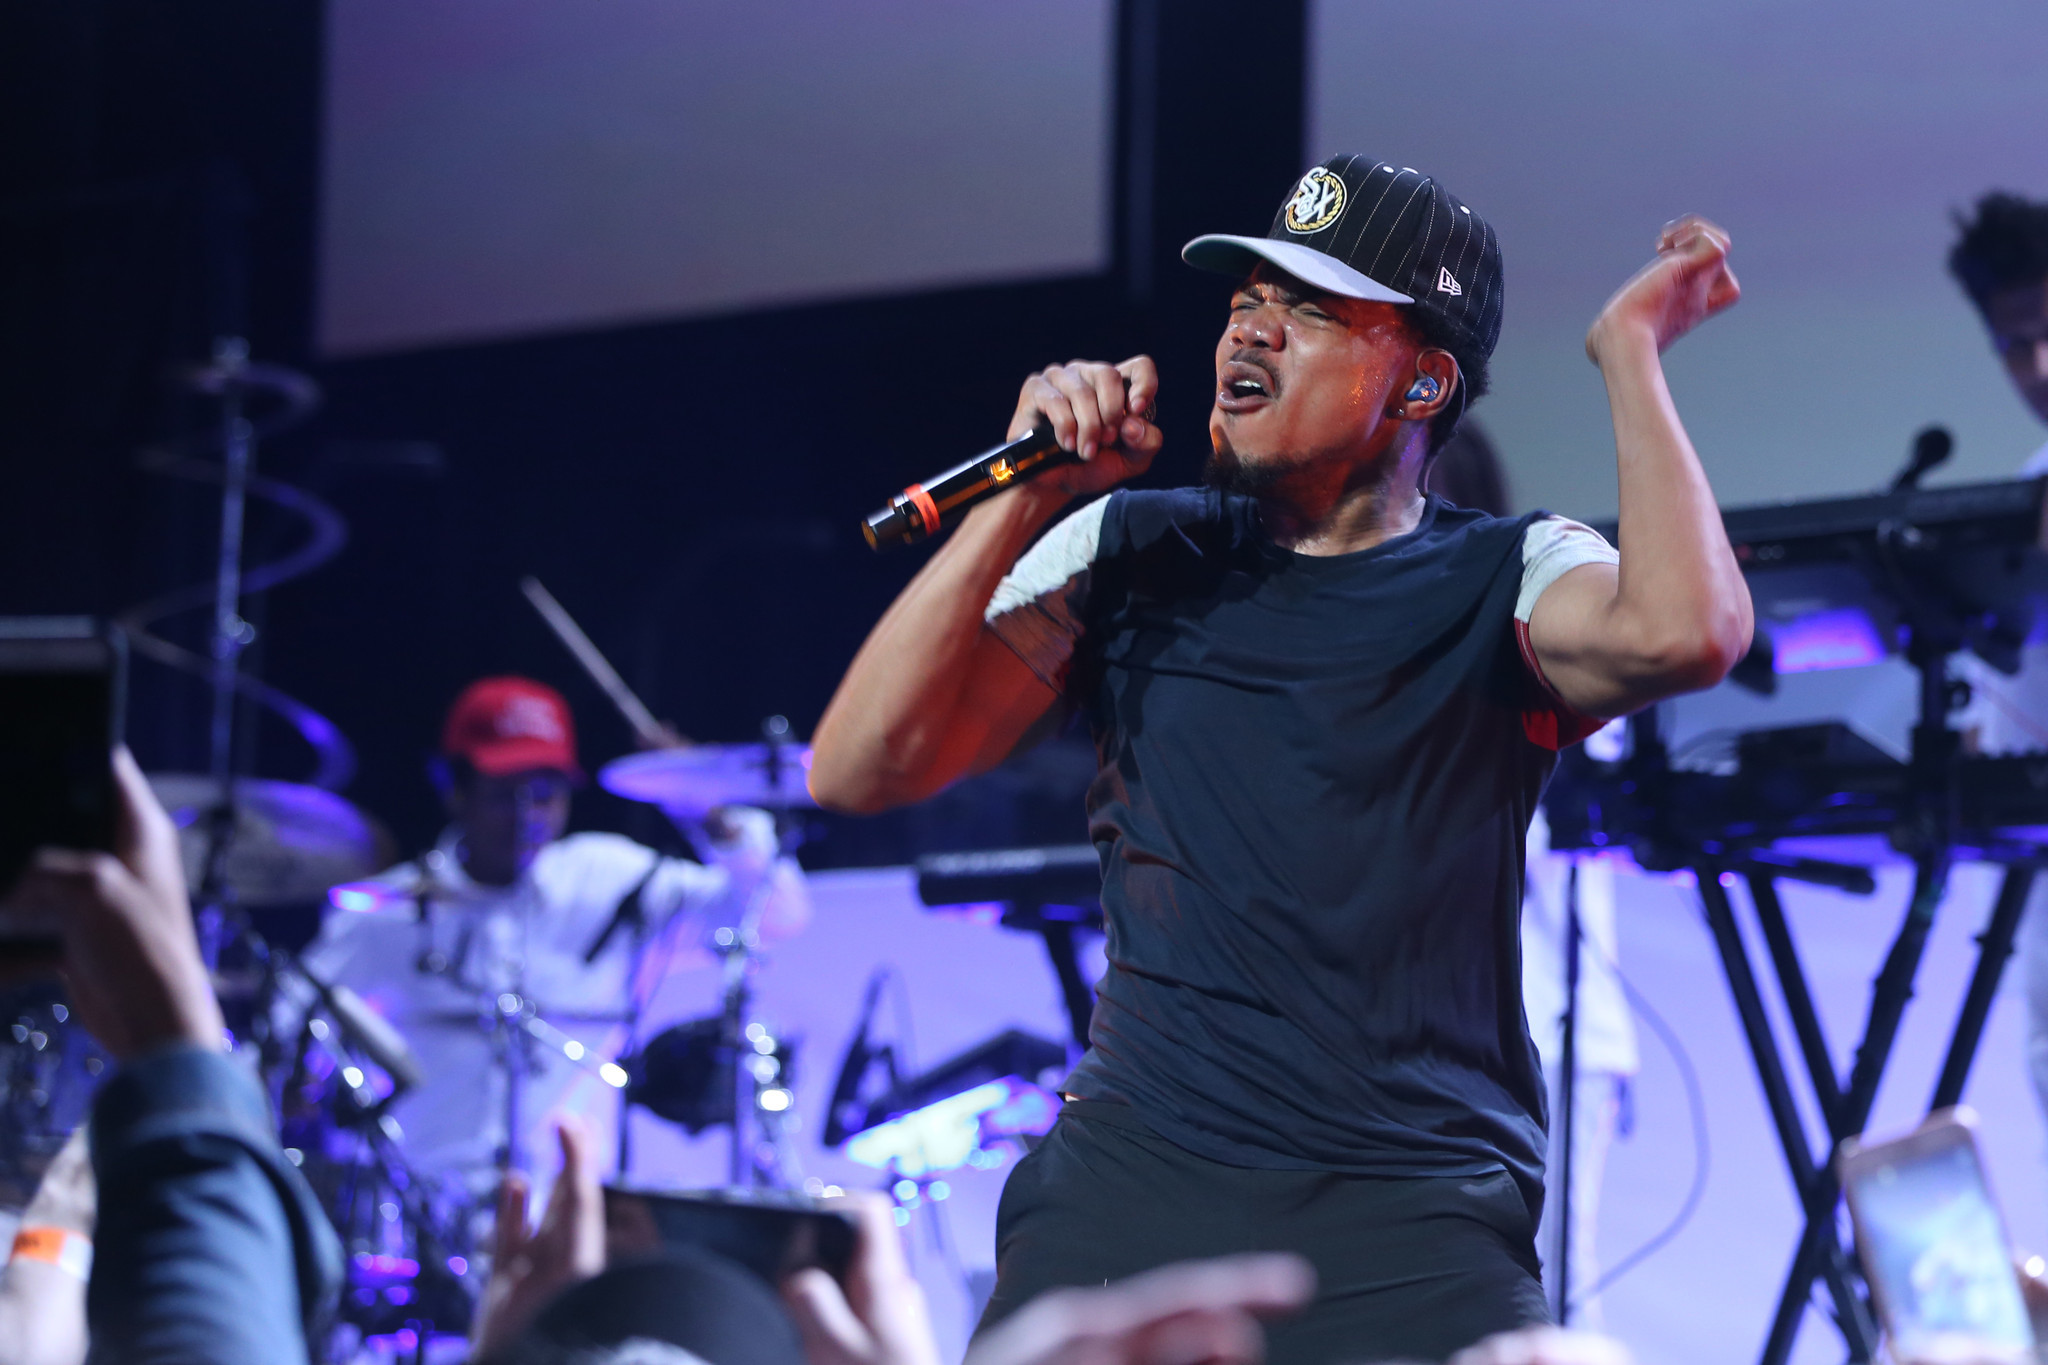 The coloring book chance the rapper itunes - The Coloring Book Chance The Rapper Itunes 59